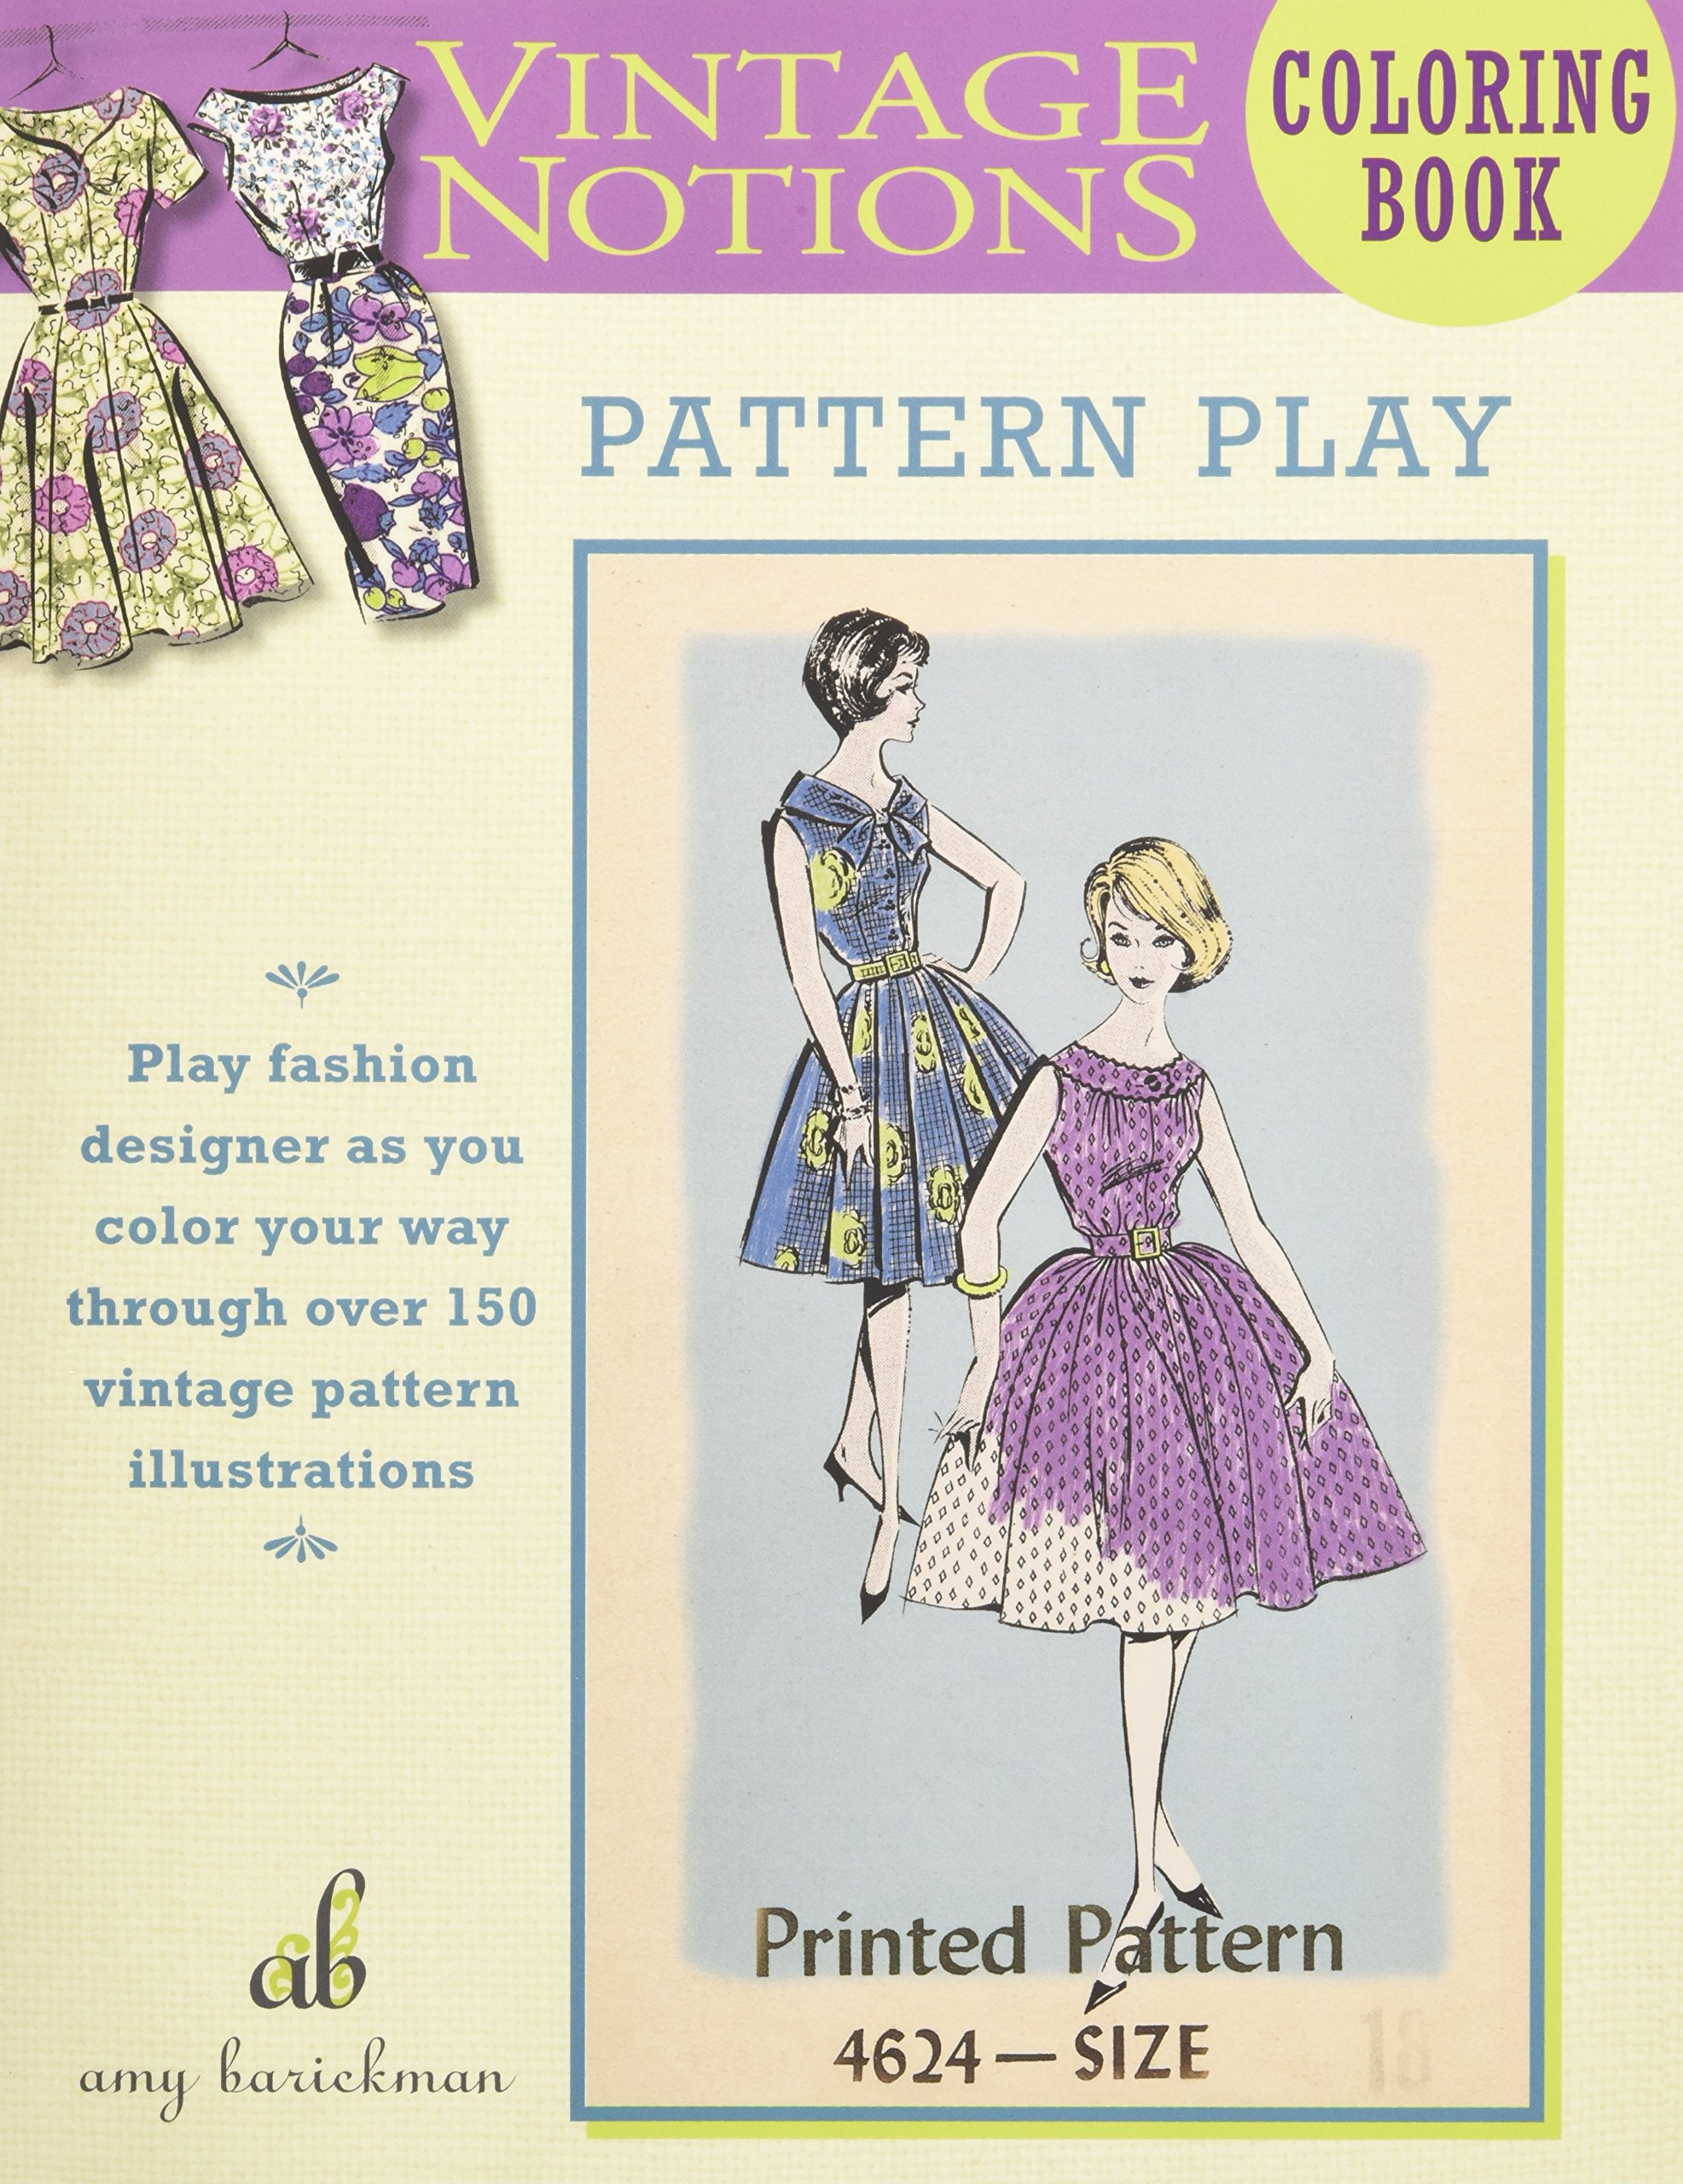 Vintage Notions Coloring Book: Pattern Play: Amy Barickman: 9780692701737:  Amazon.com: Books